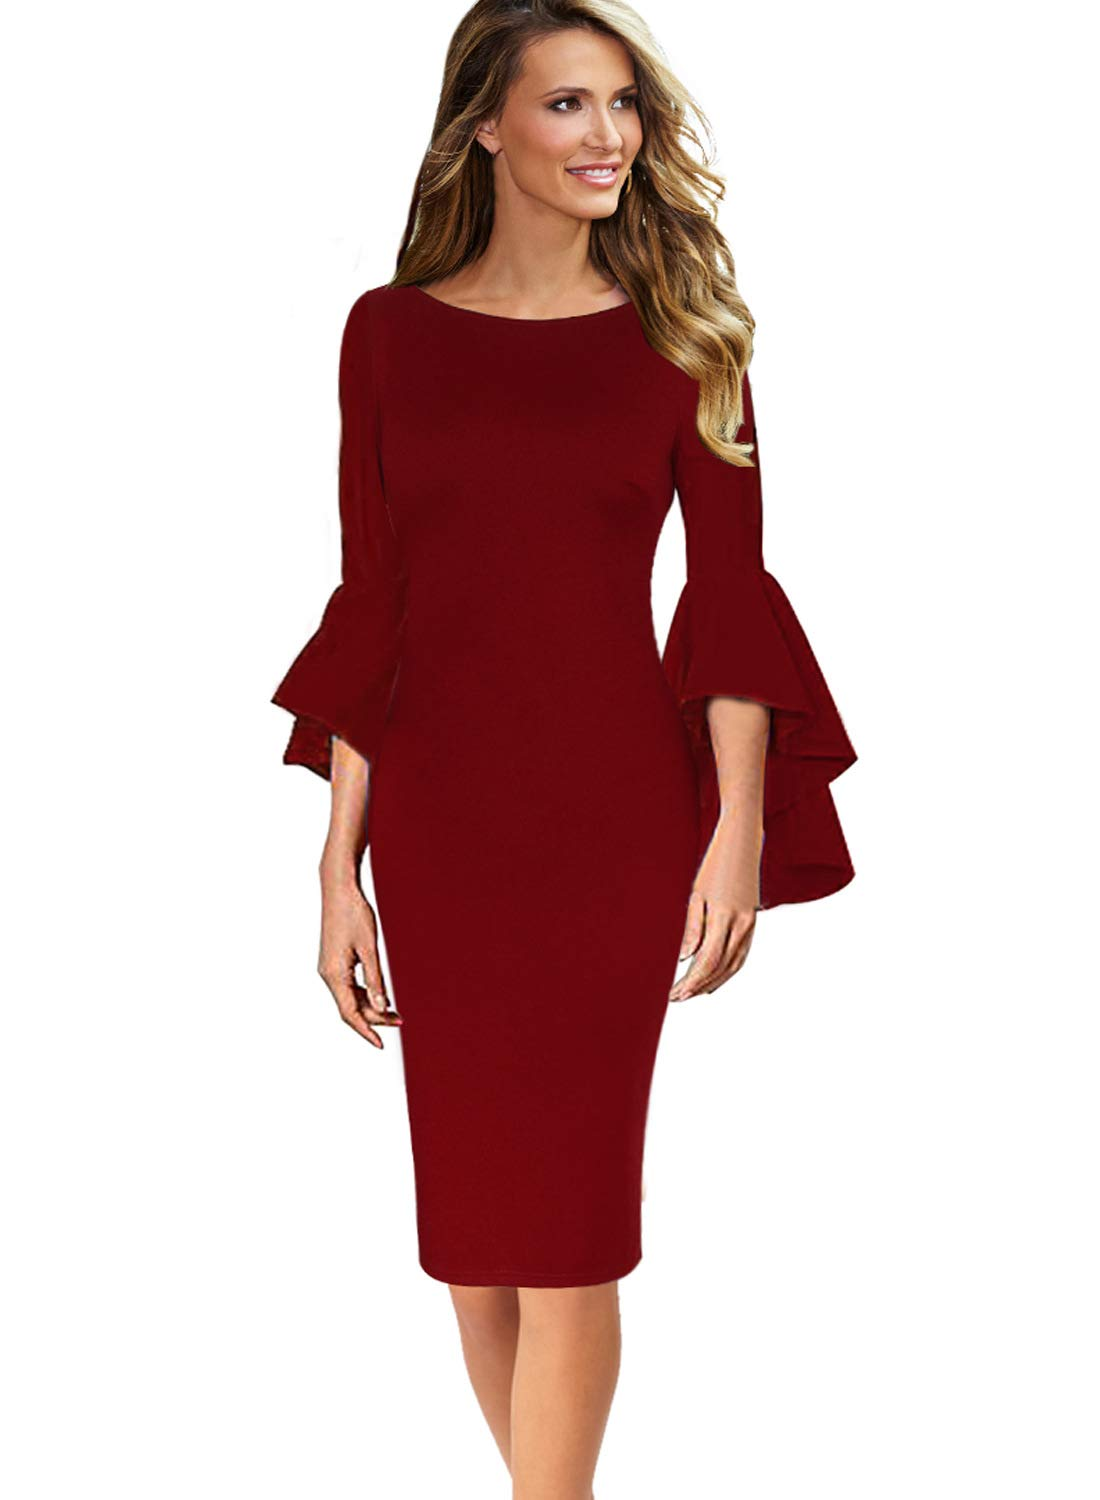 d877afc92330e VFSHOW Womens Ruffle Bell Sleeves Business Cocktail Party Sheath Dress  product image